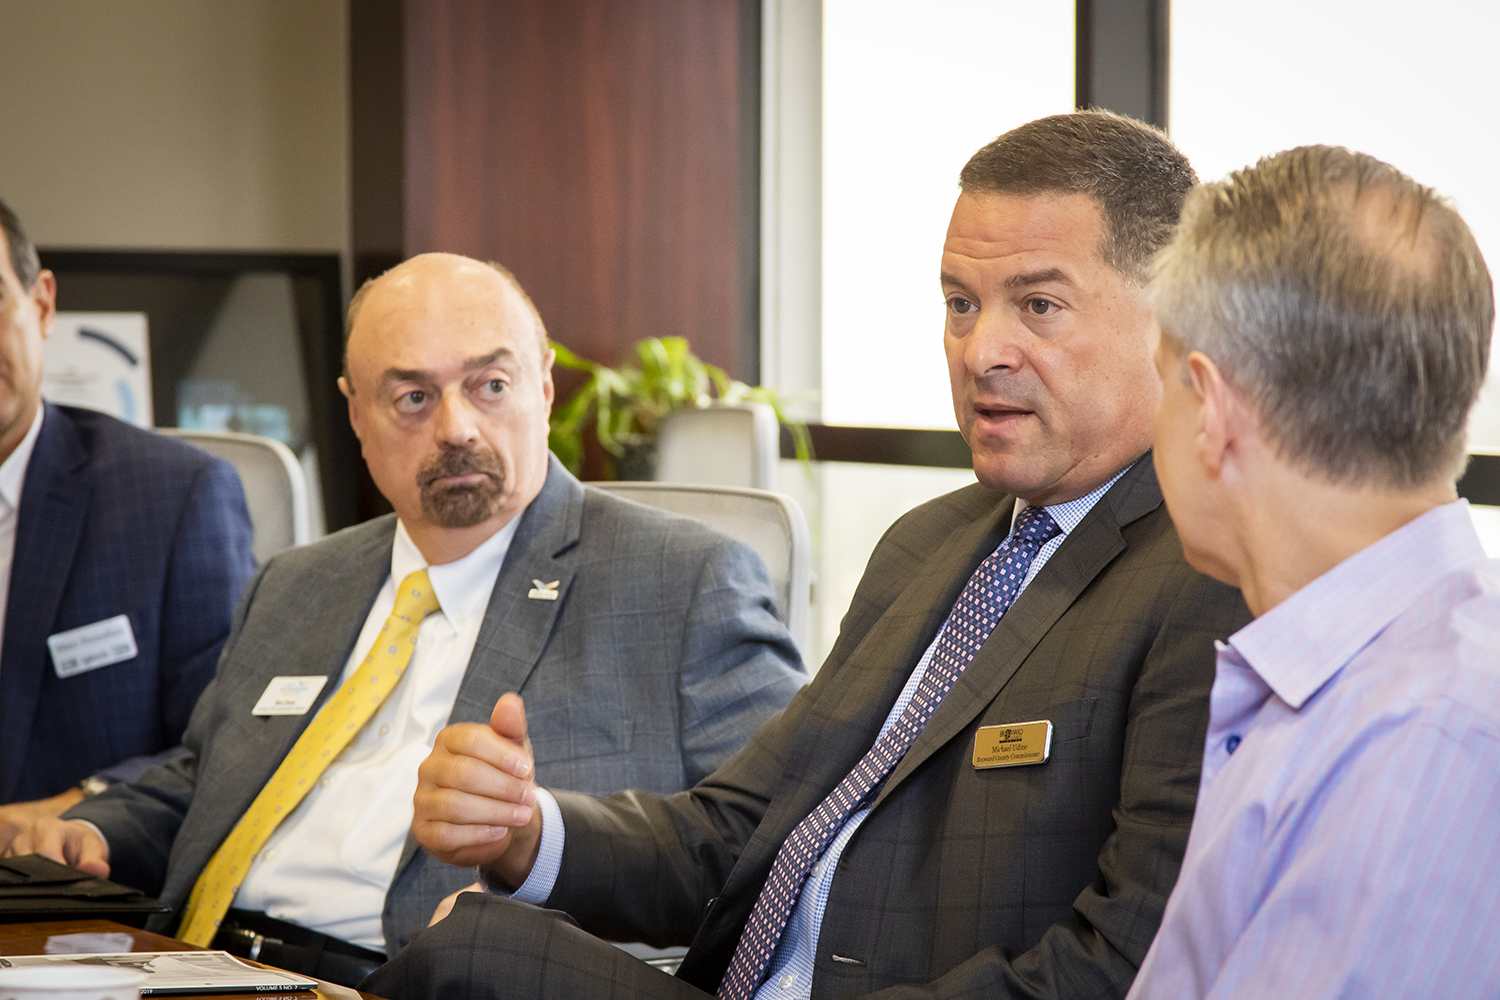 Broward County Commissioner Michael Udine, center, make a point as Ron Drew of the Alliance, left, and Will Fleming listen.